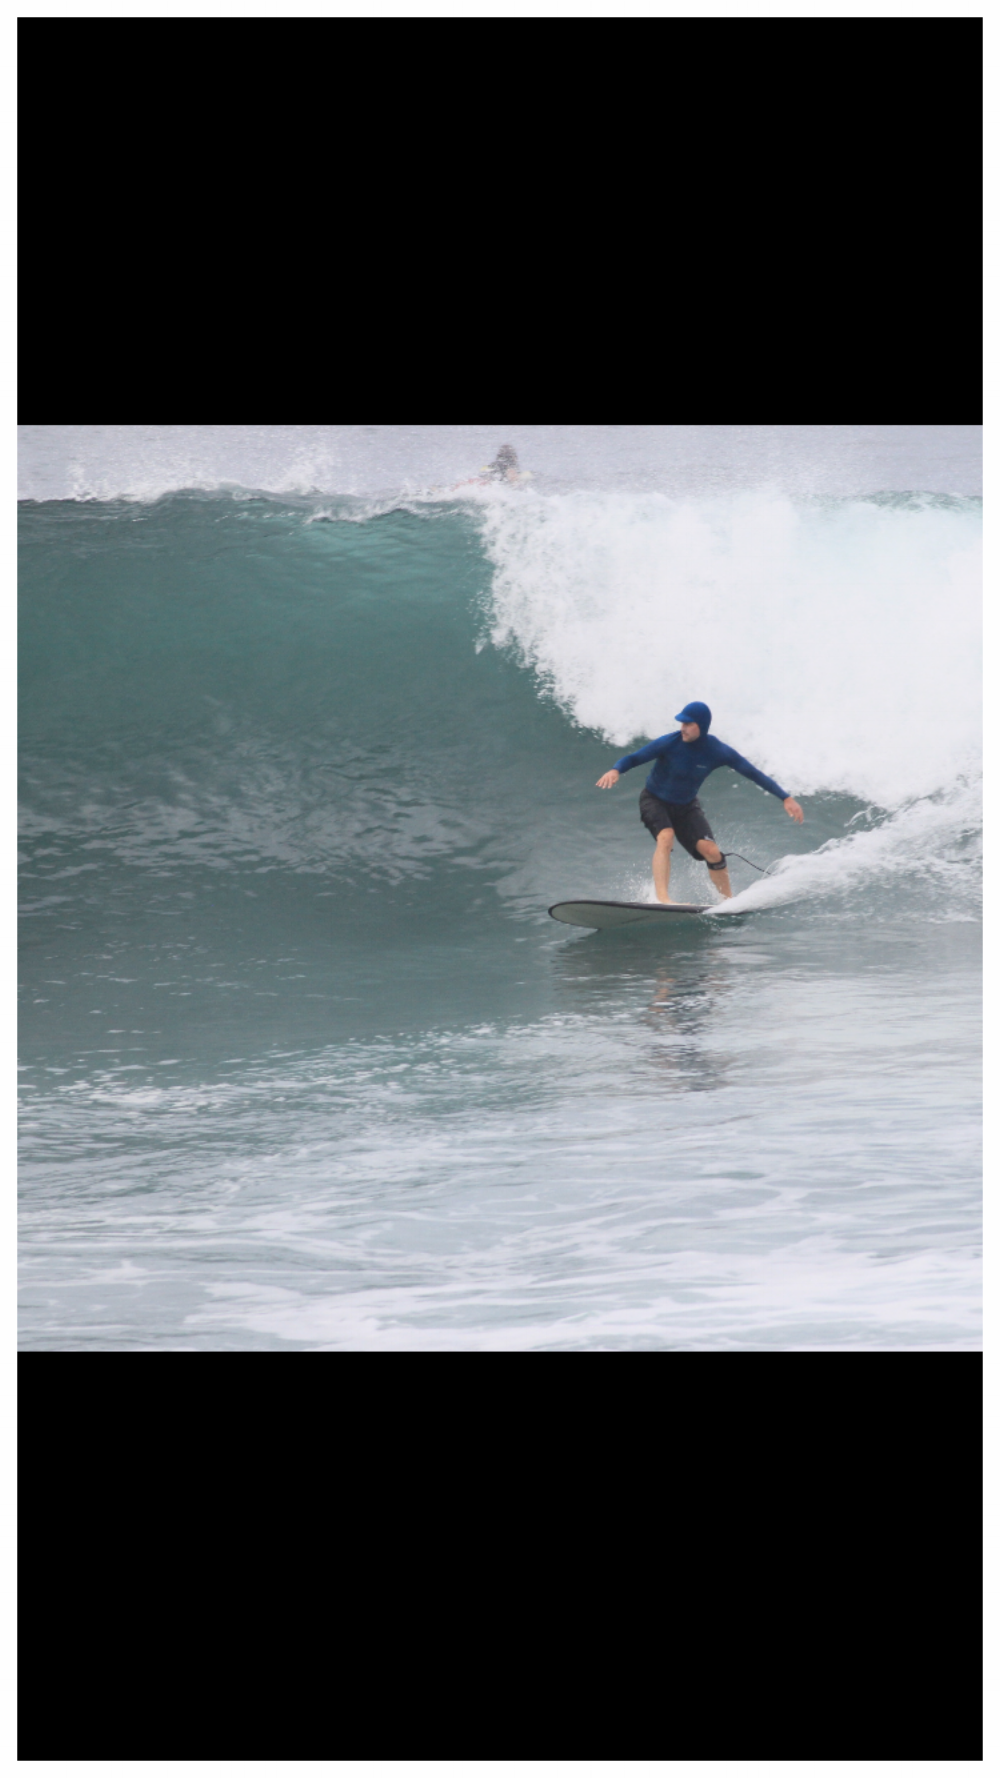 Local surfer Max Carroll needs good knee and hip stability to safely assume the surf stance which places the back knee in a valgus position